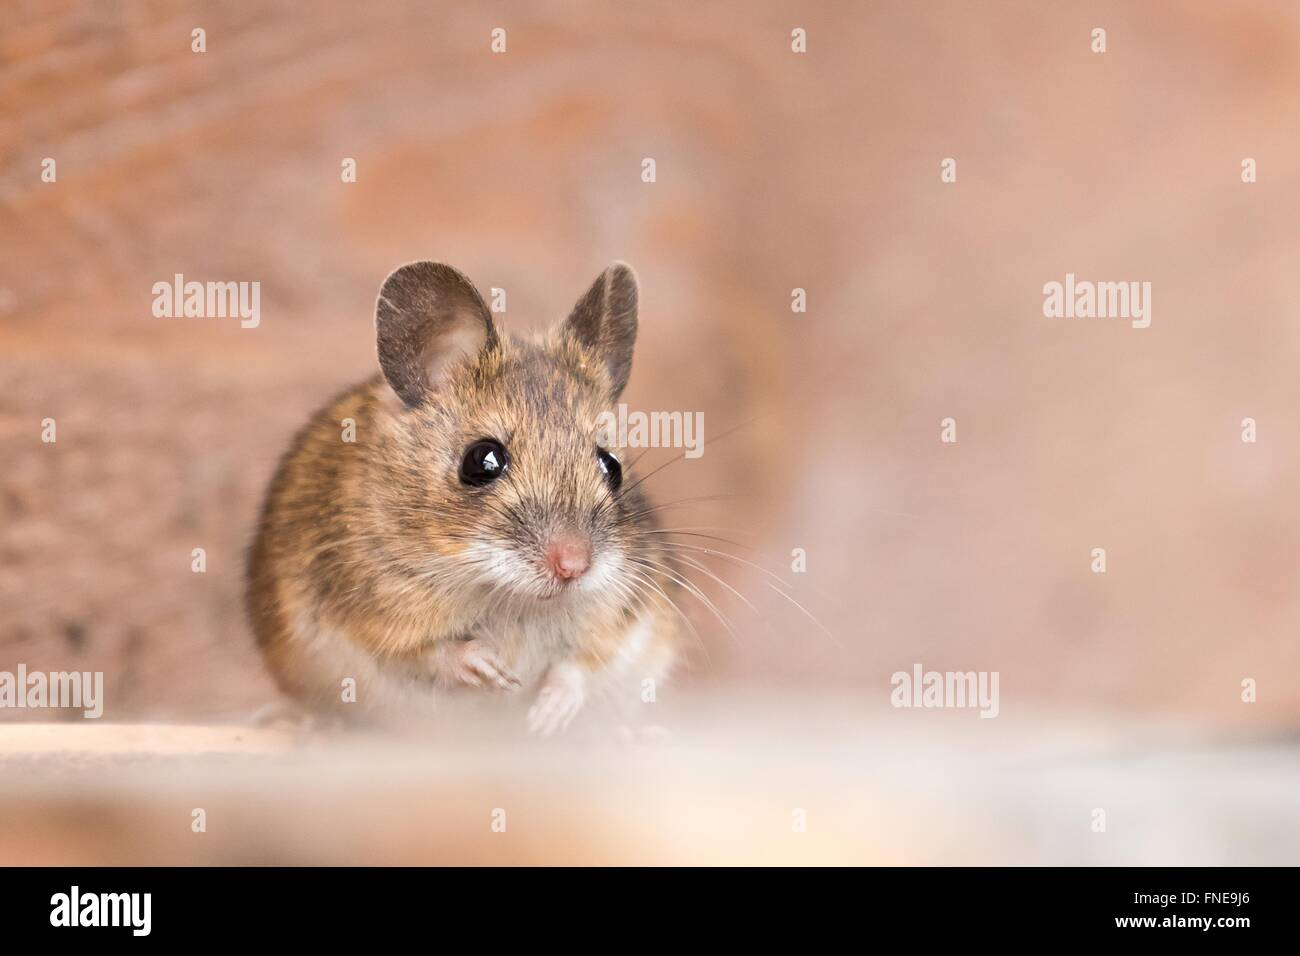 House mouse (Mus musculus), portrait, Hesse, Germany - Stock Image